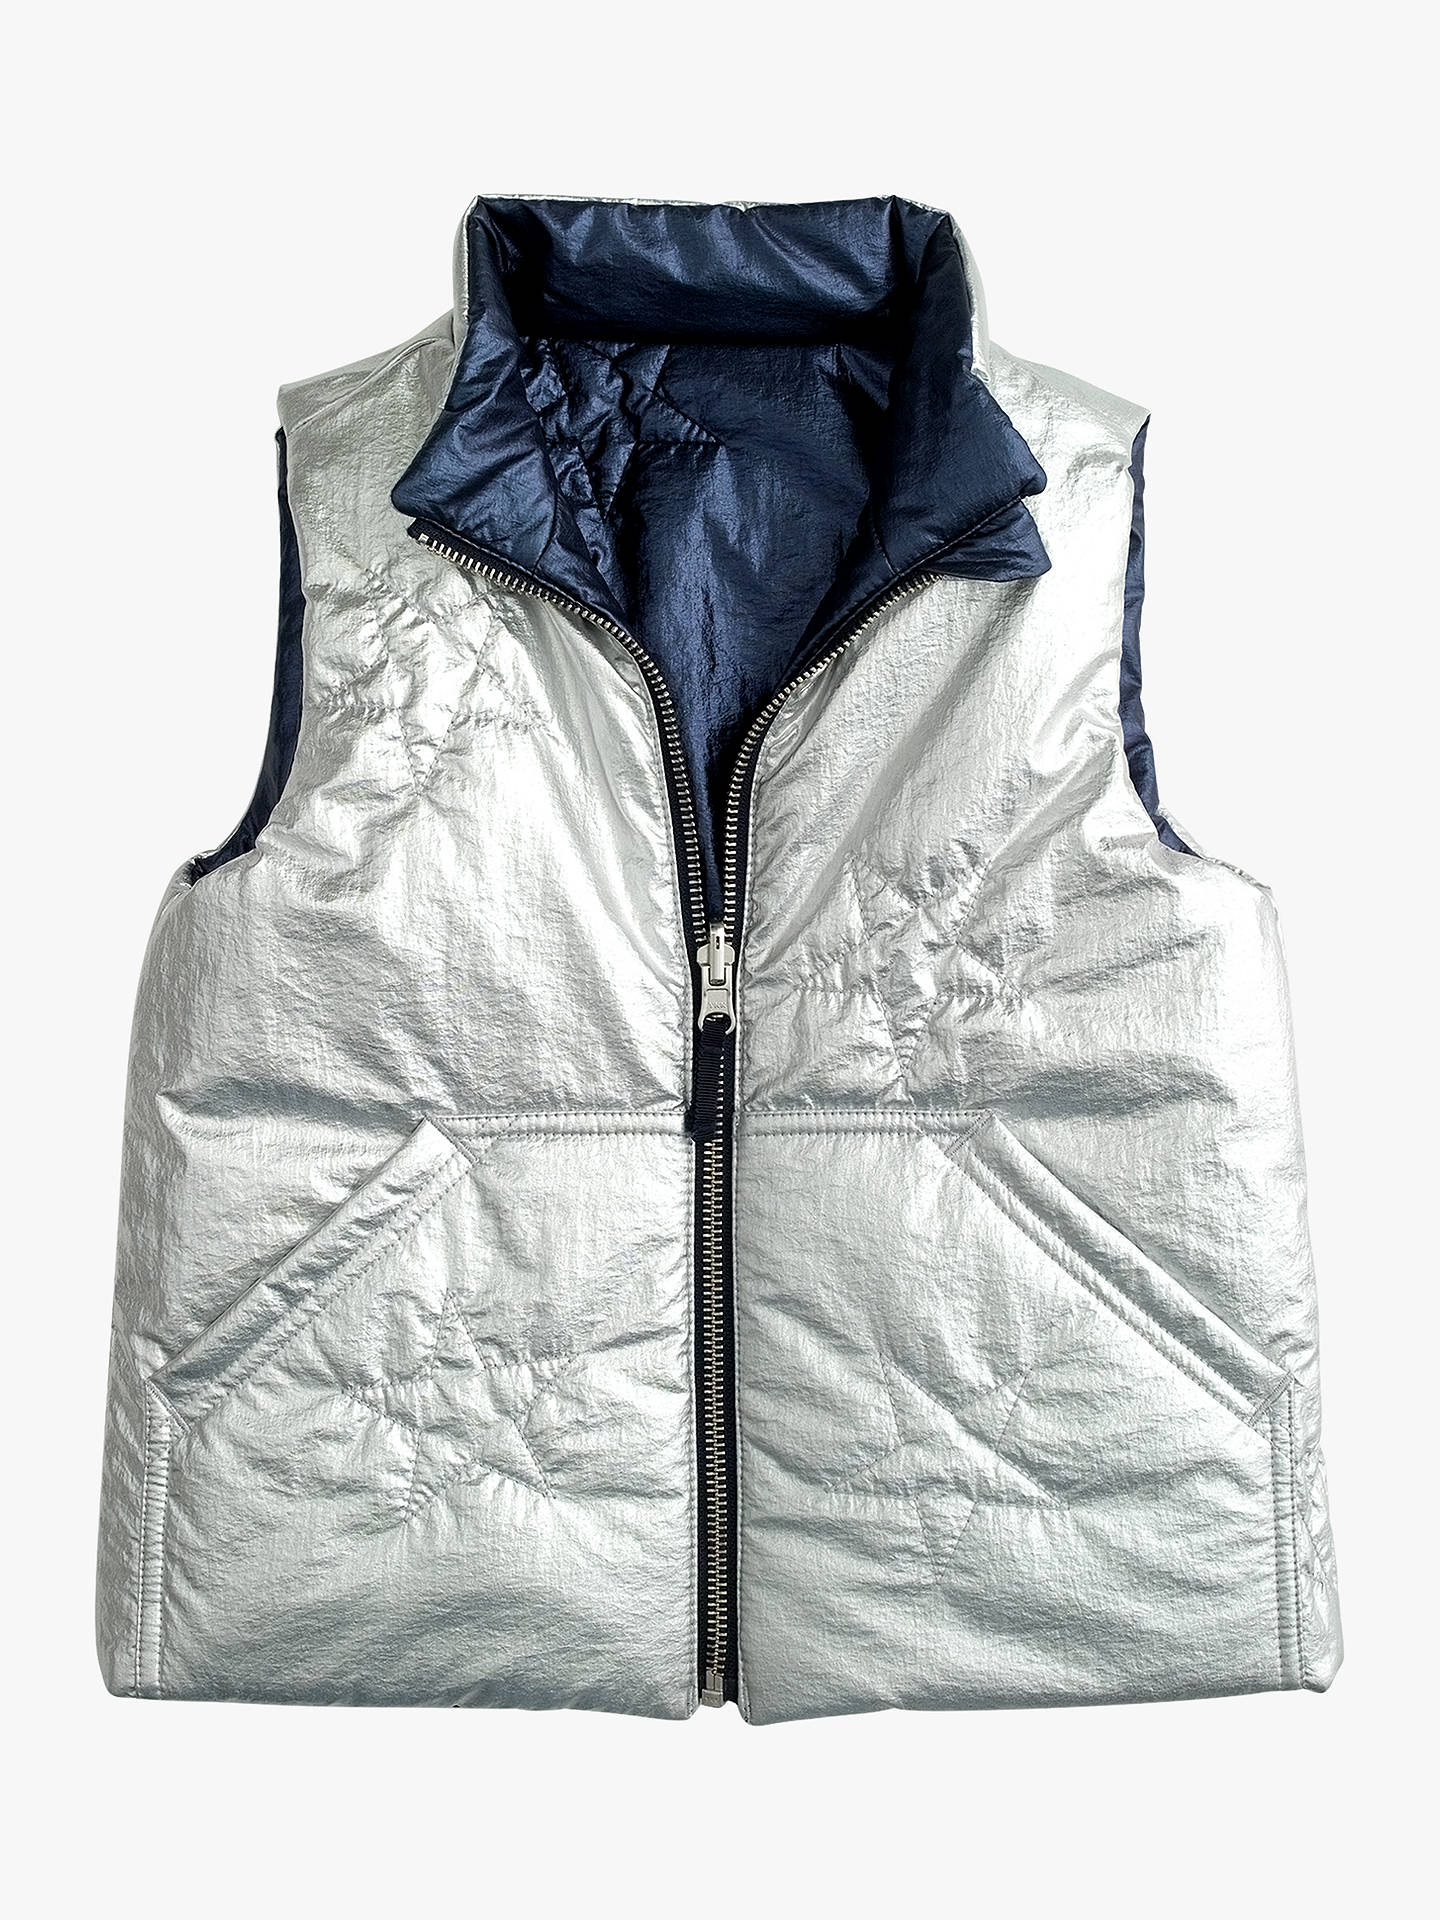 28d490a30c651 ... Buy crewcuts by J.Crew Girls' Reversible Metallic Padded Vest, Navy /Silver